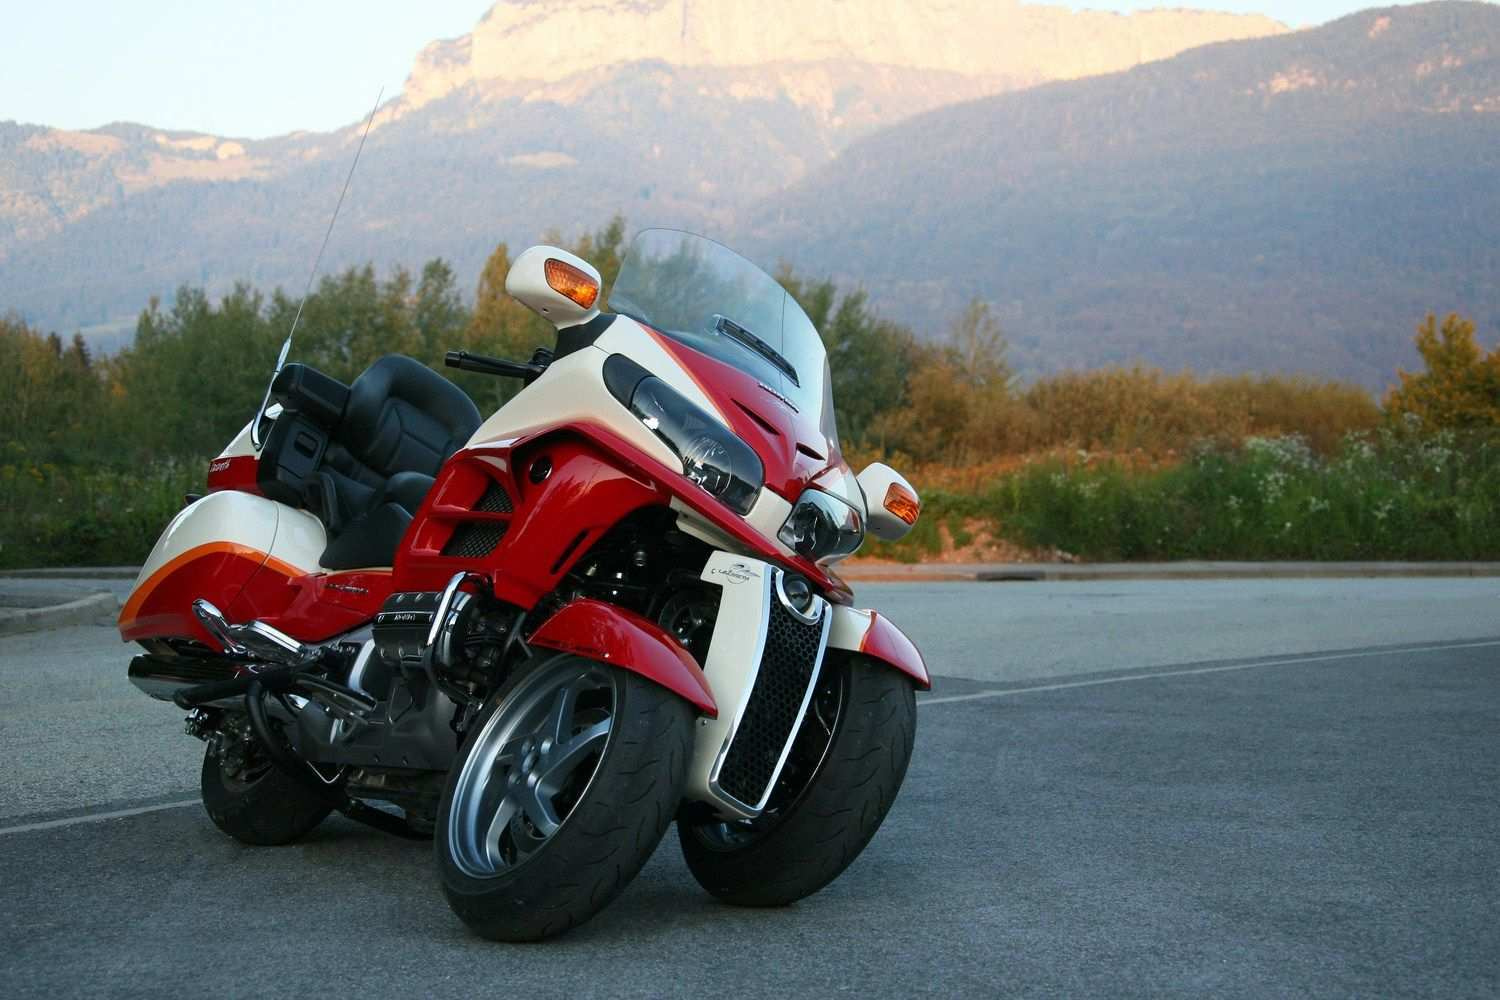 79 Concept of 2020 Honda Goldwing Exterior Redesign by 2020 Honda Goldwing Exterior